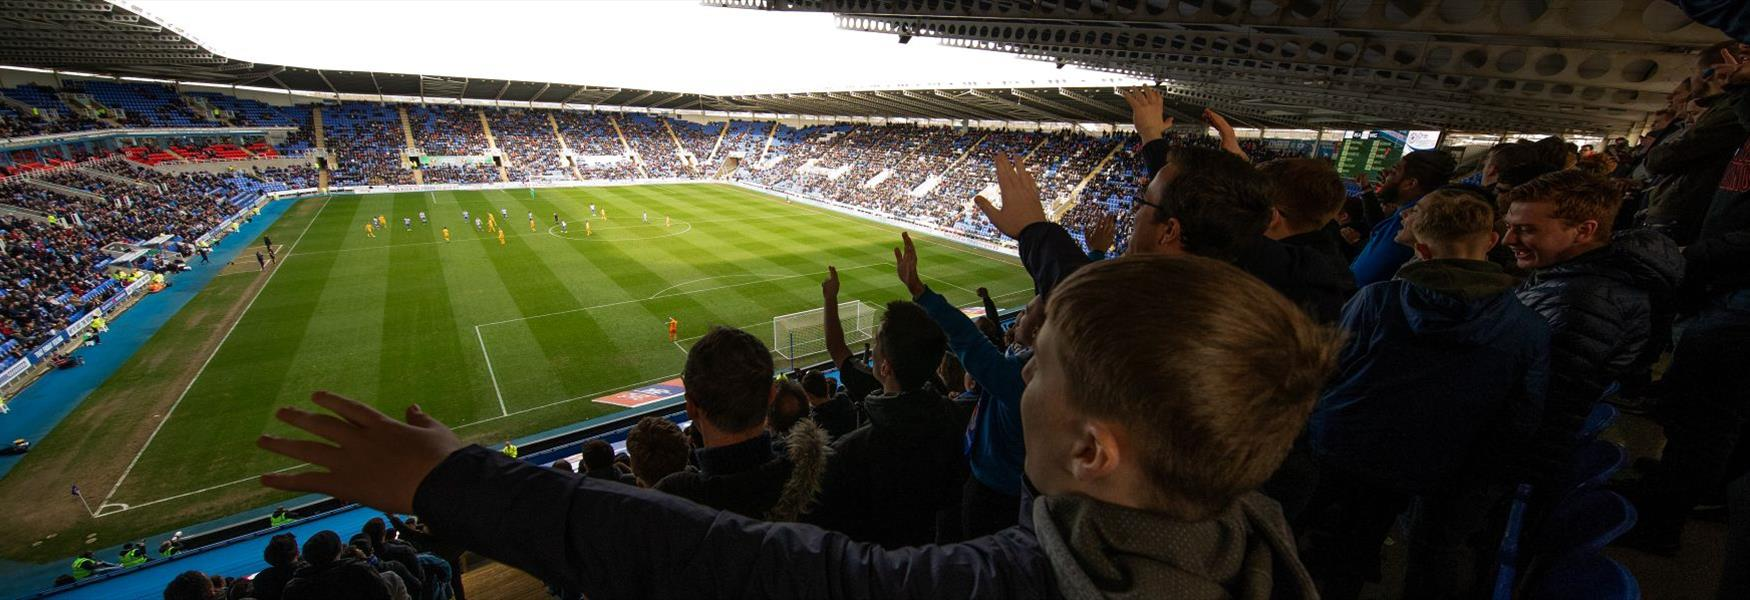 d08ba504bf506 Enjoy a game at nearby Reading Football Club!